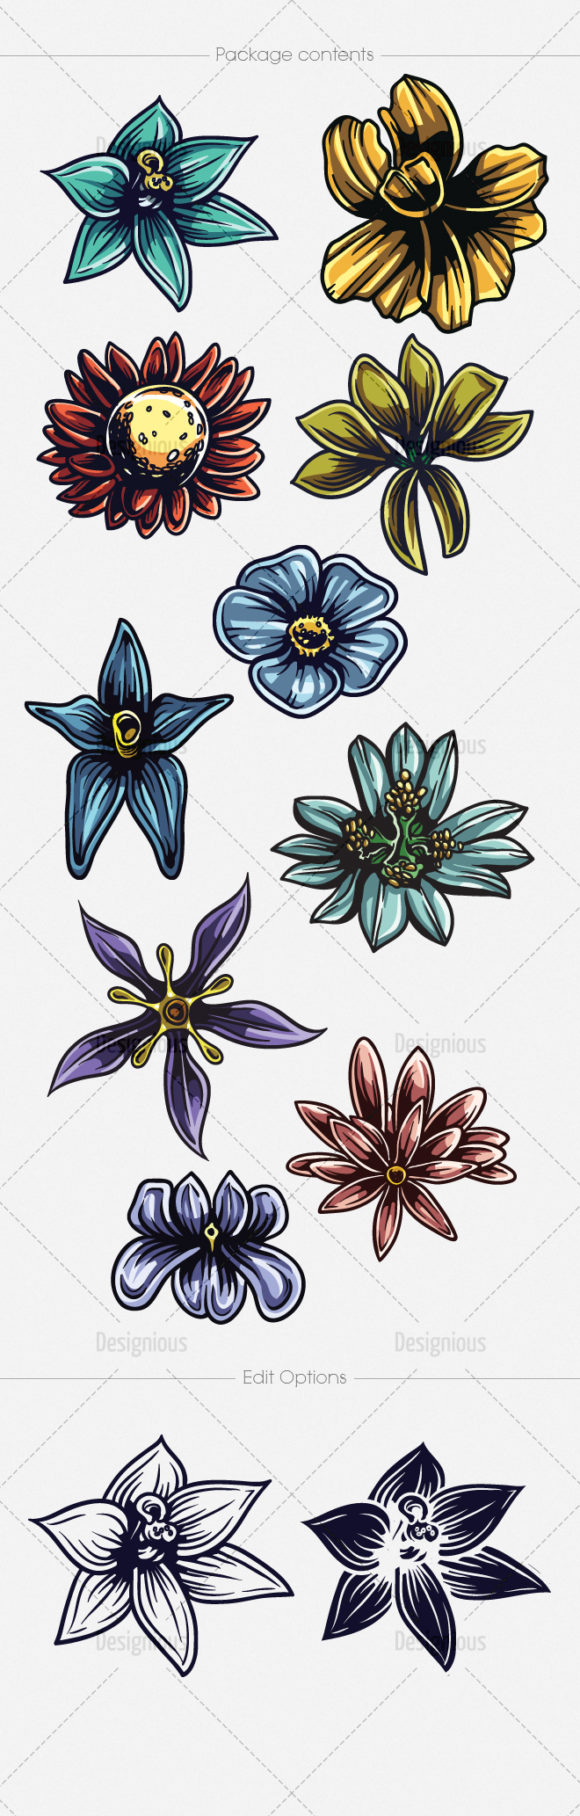 Floral Vector Pack 138 6